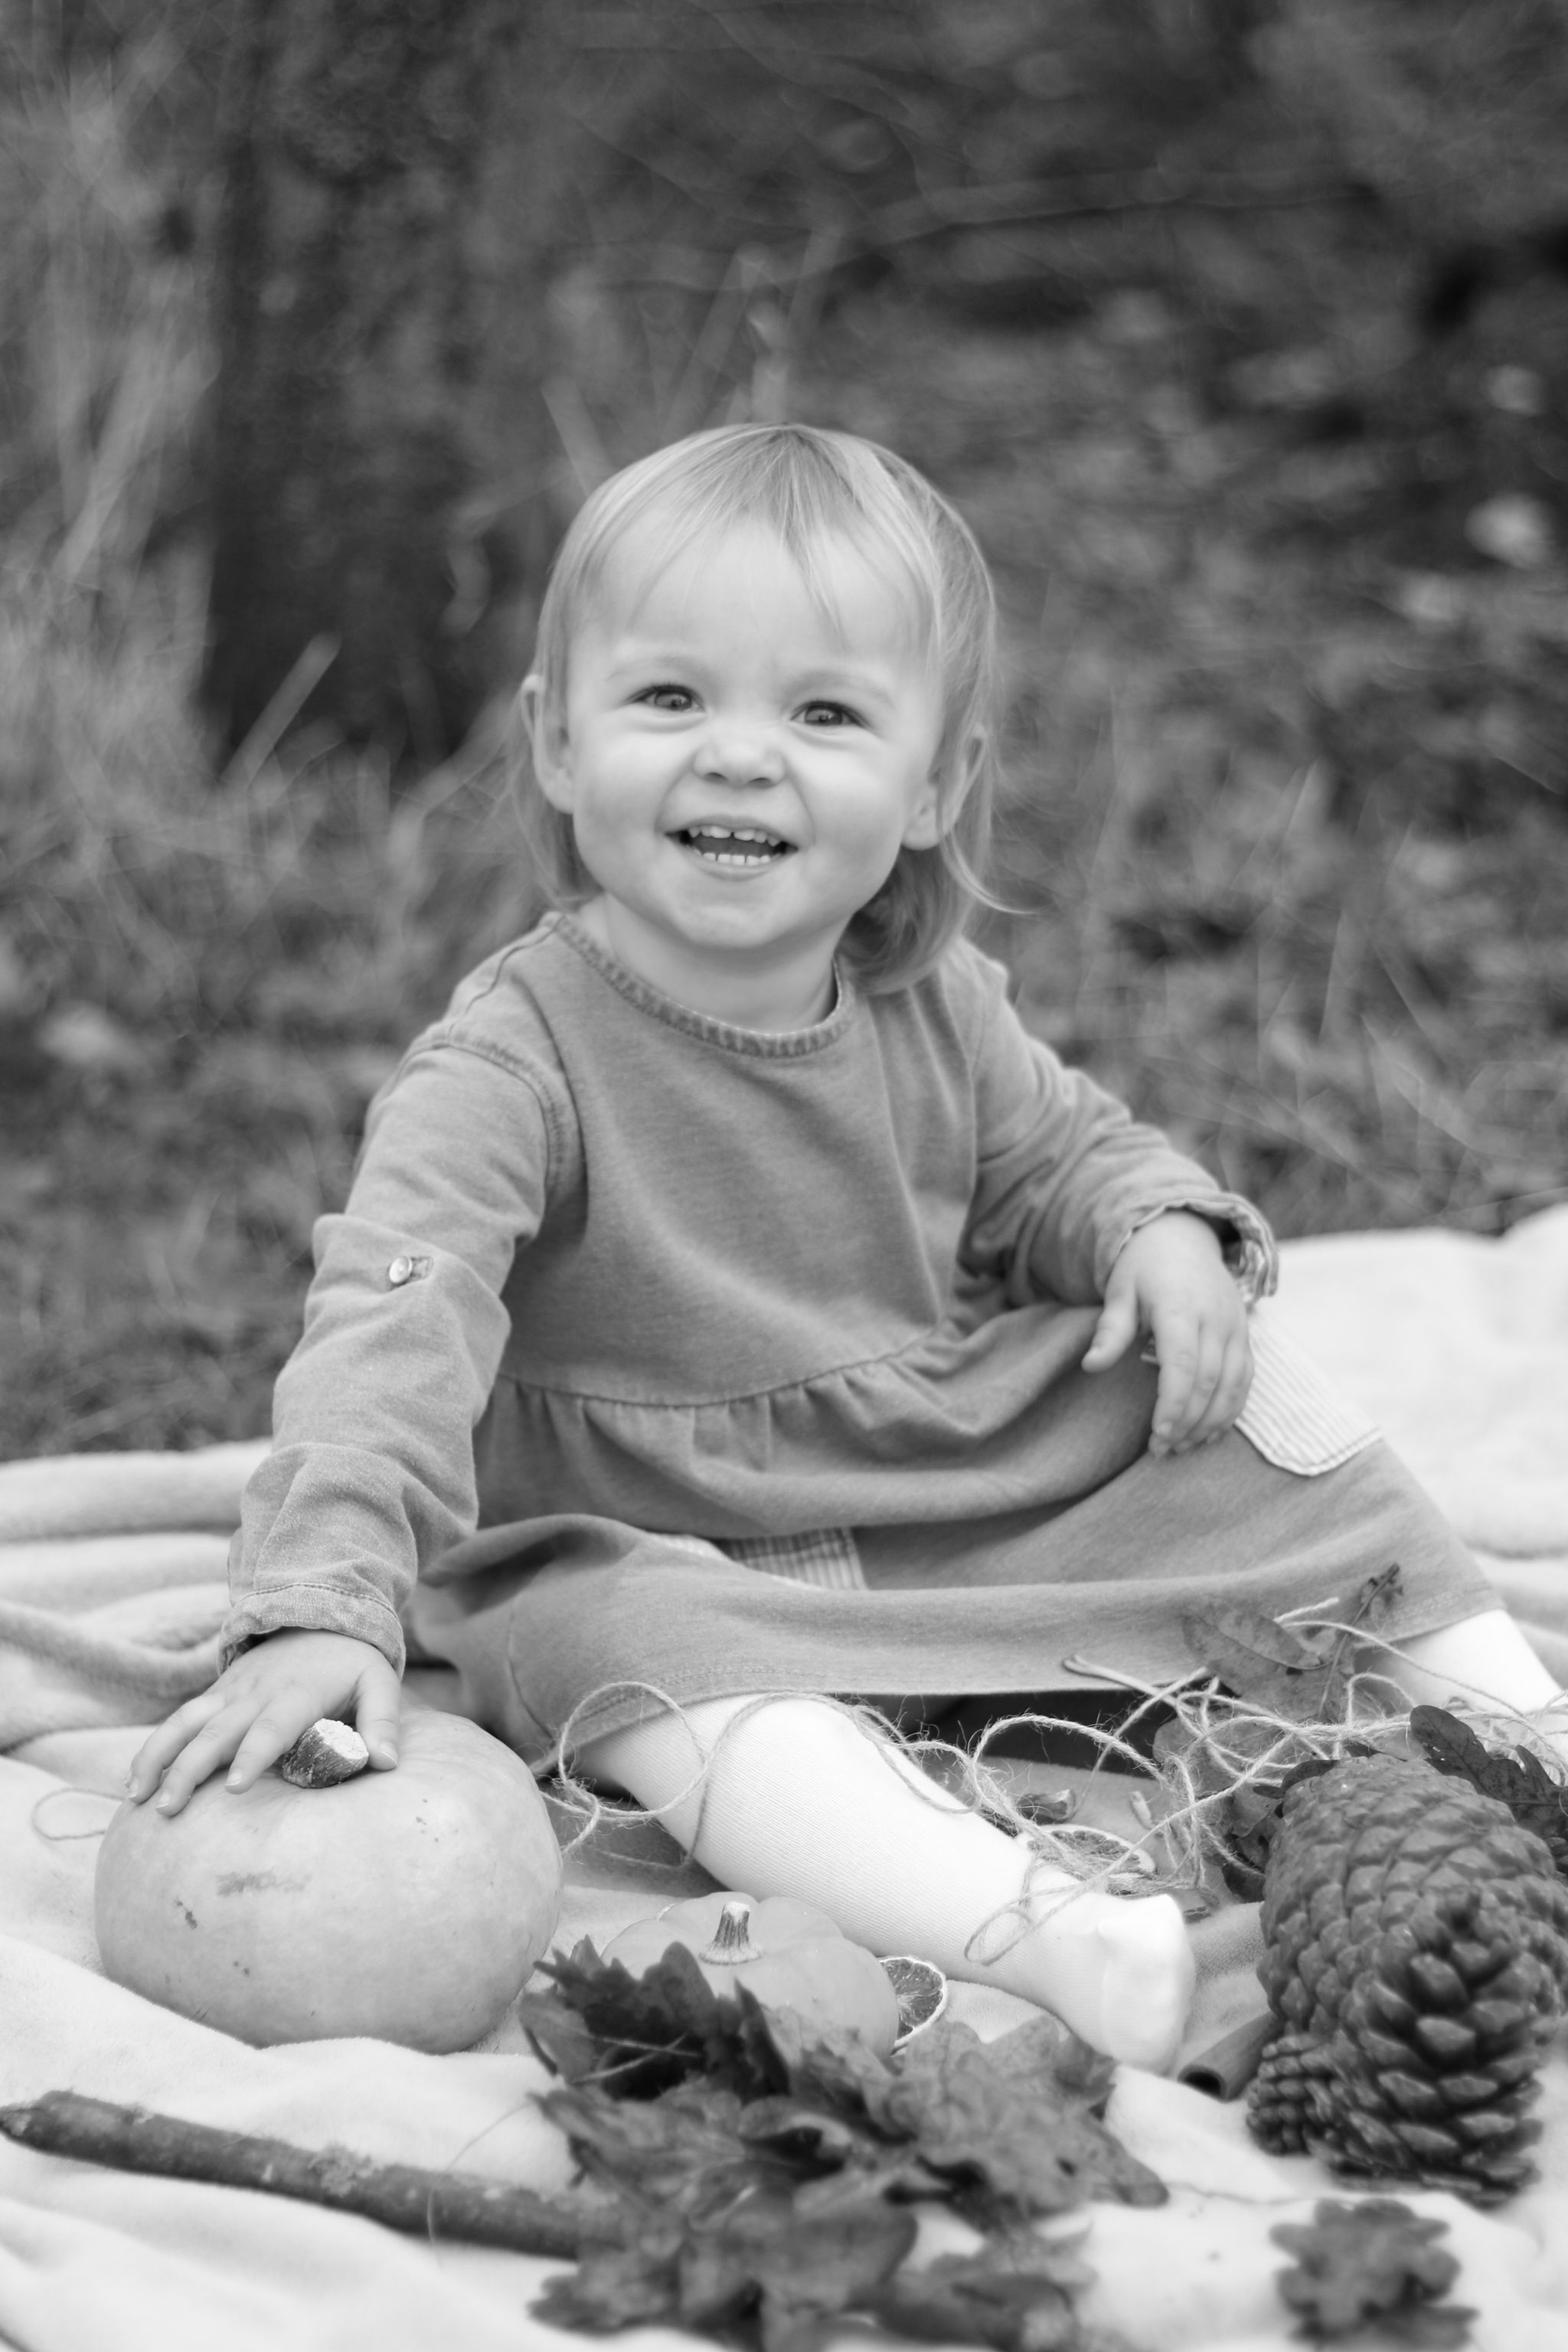 hannah layford child photography shoot portraits black and white autumn